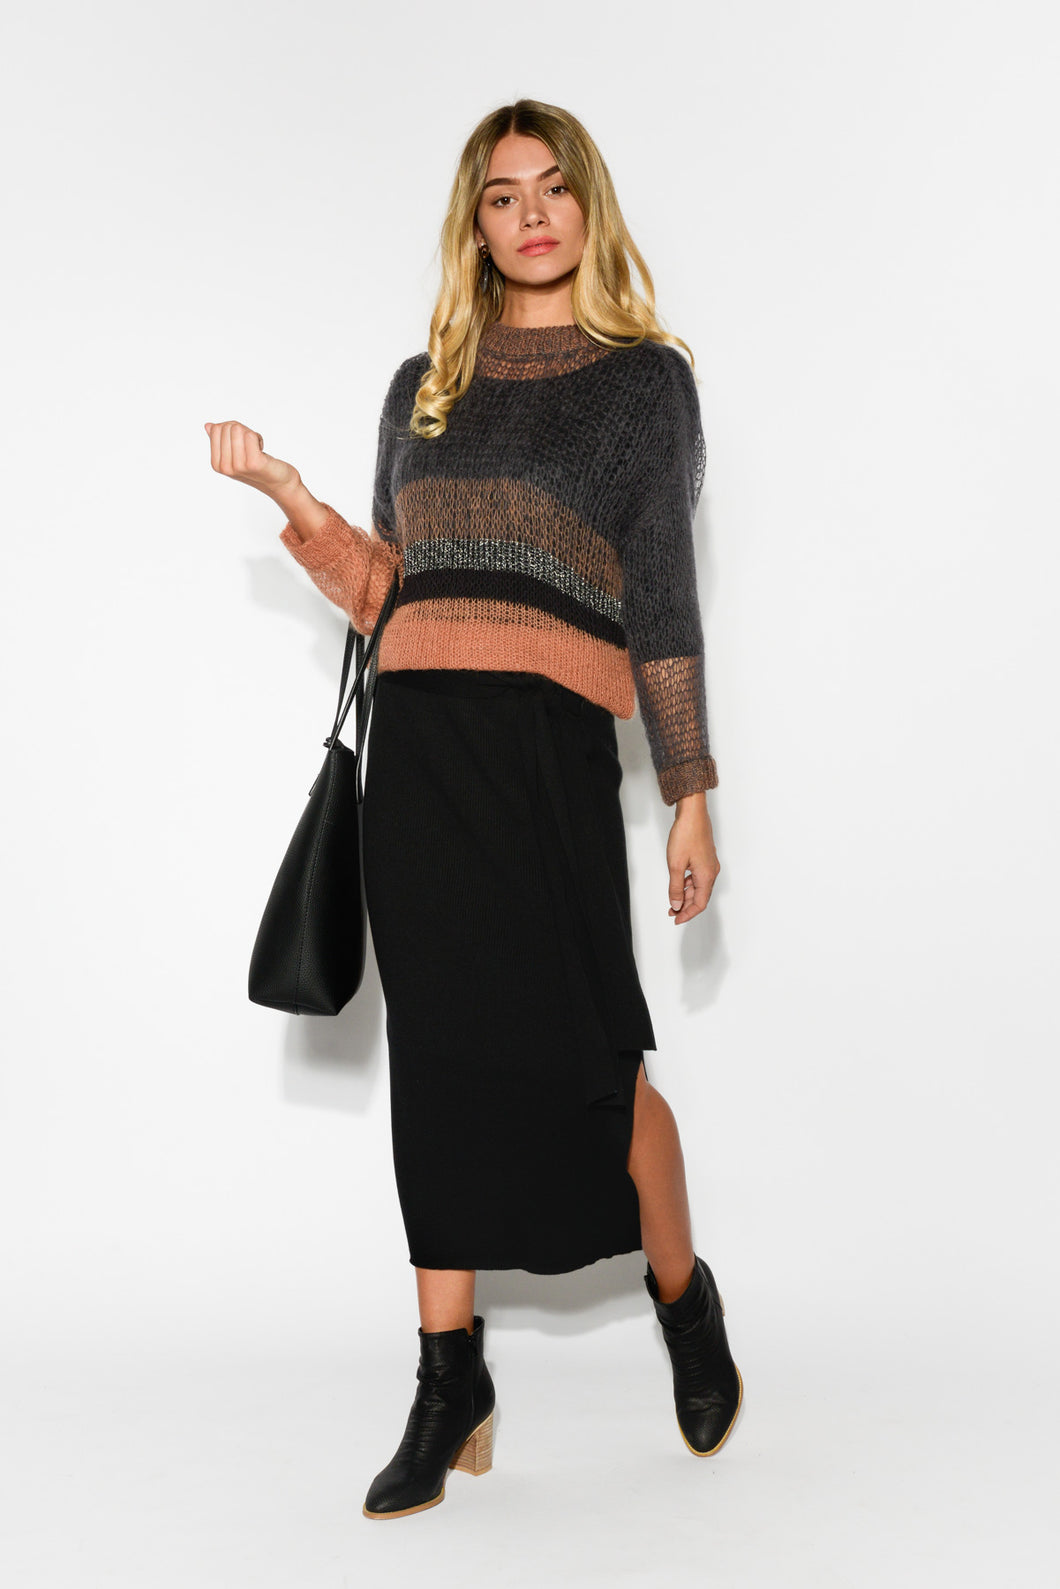 Renegade Black Knit Skirt - Blue Bungalow